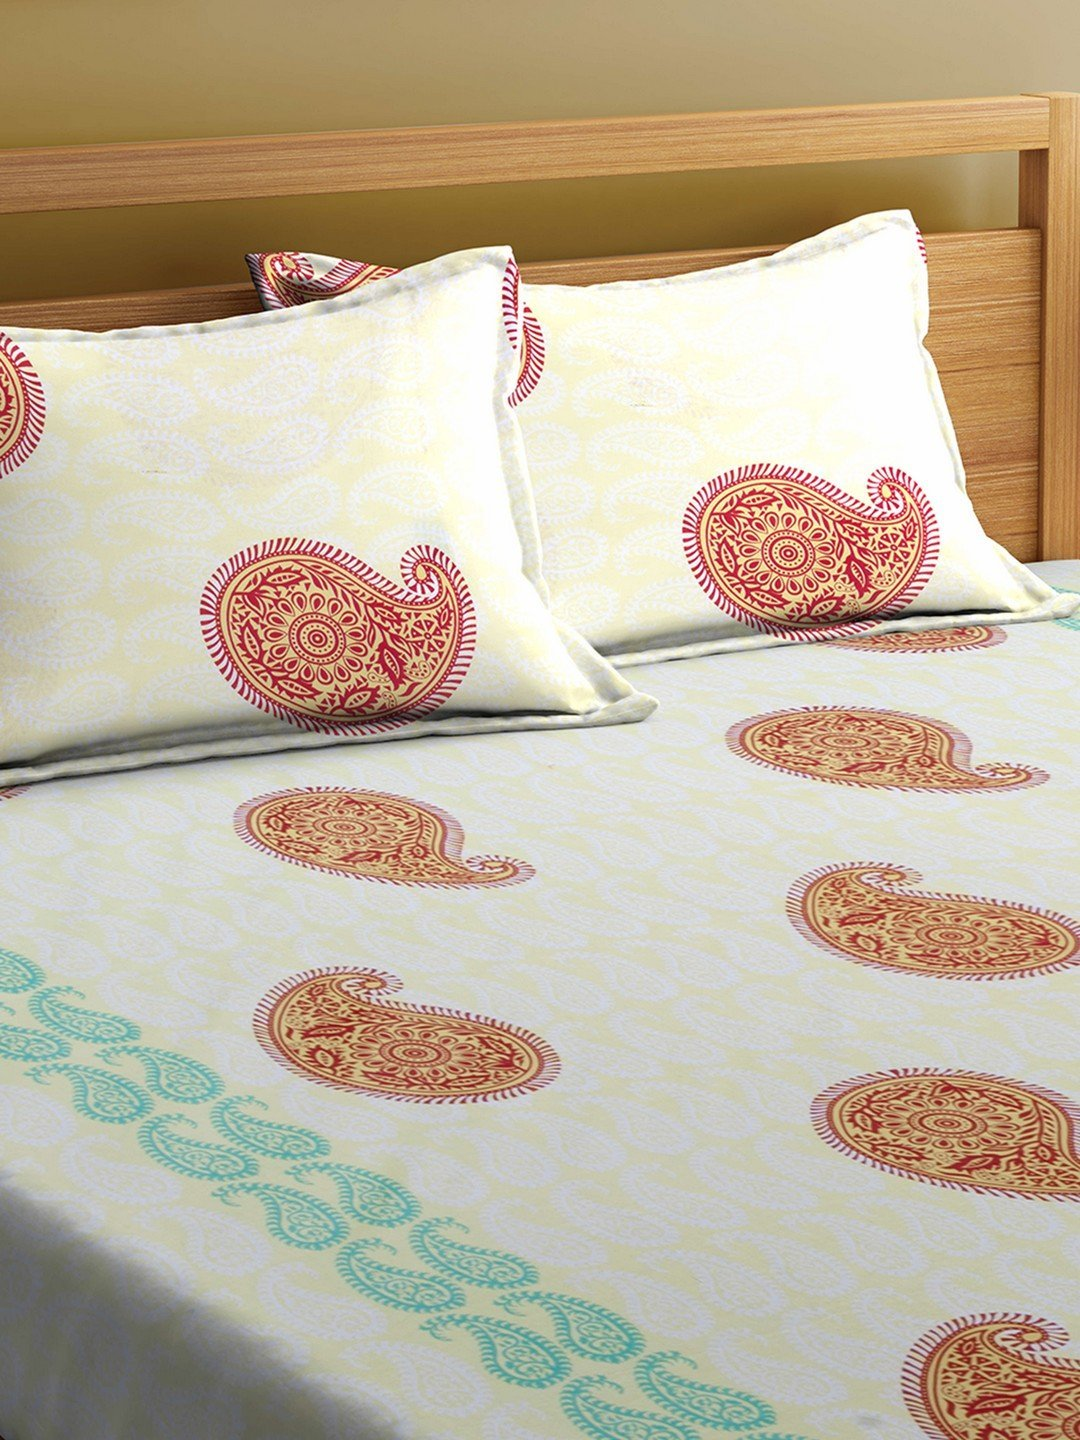 Mafatlal Cream Cotton 144 TC Double Bed Sheet With Pillow Covers